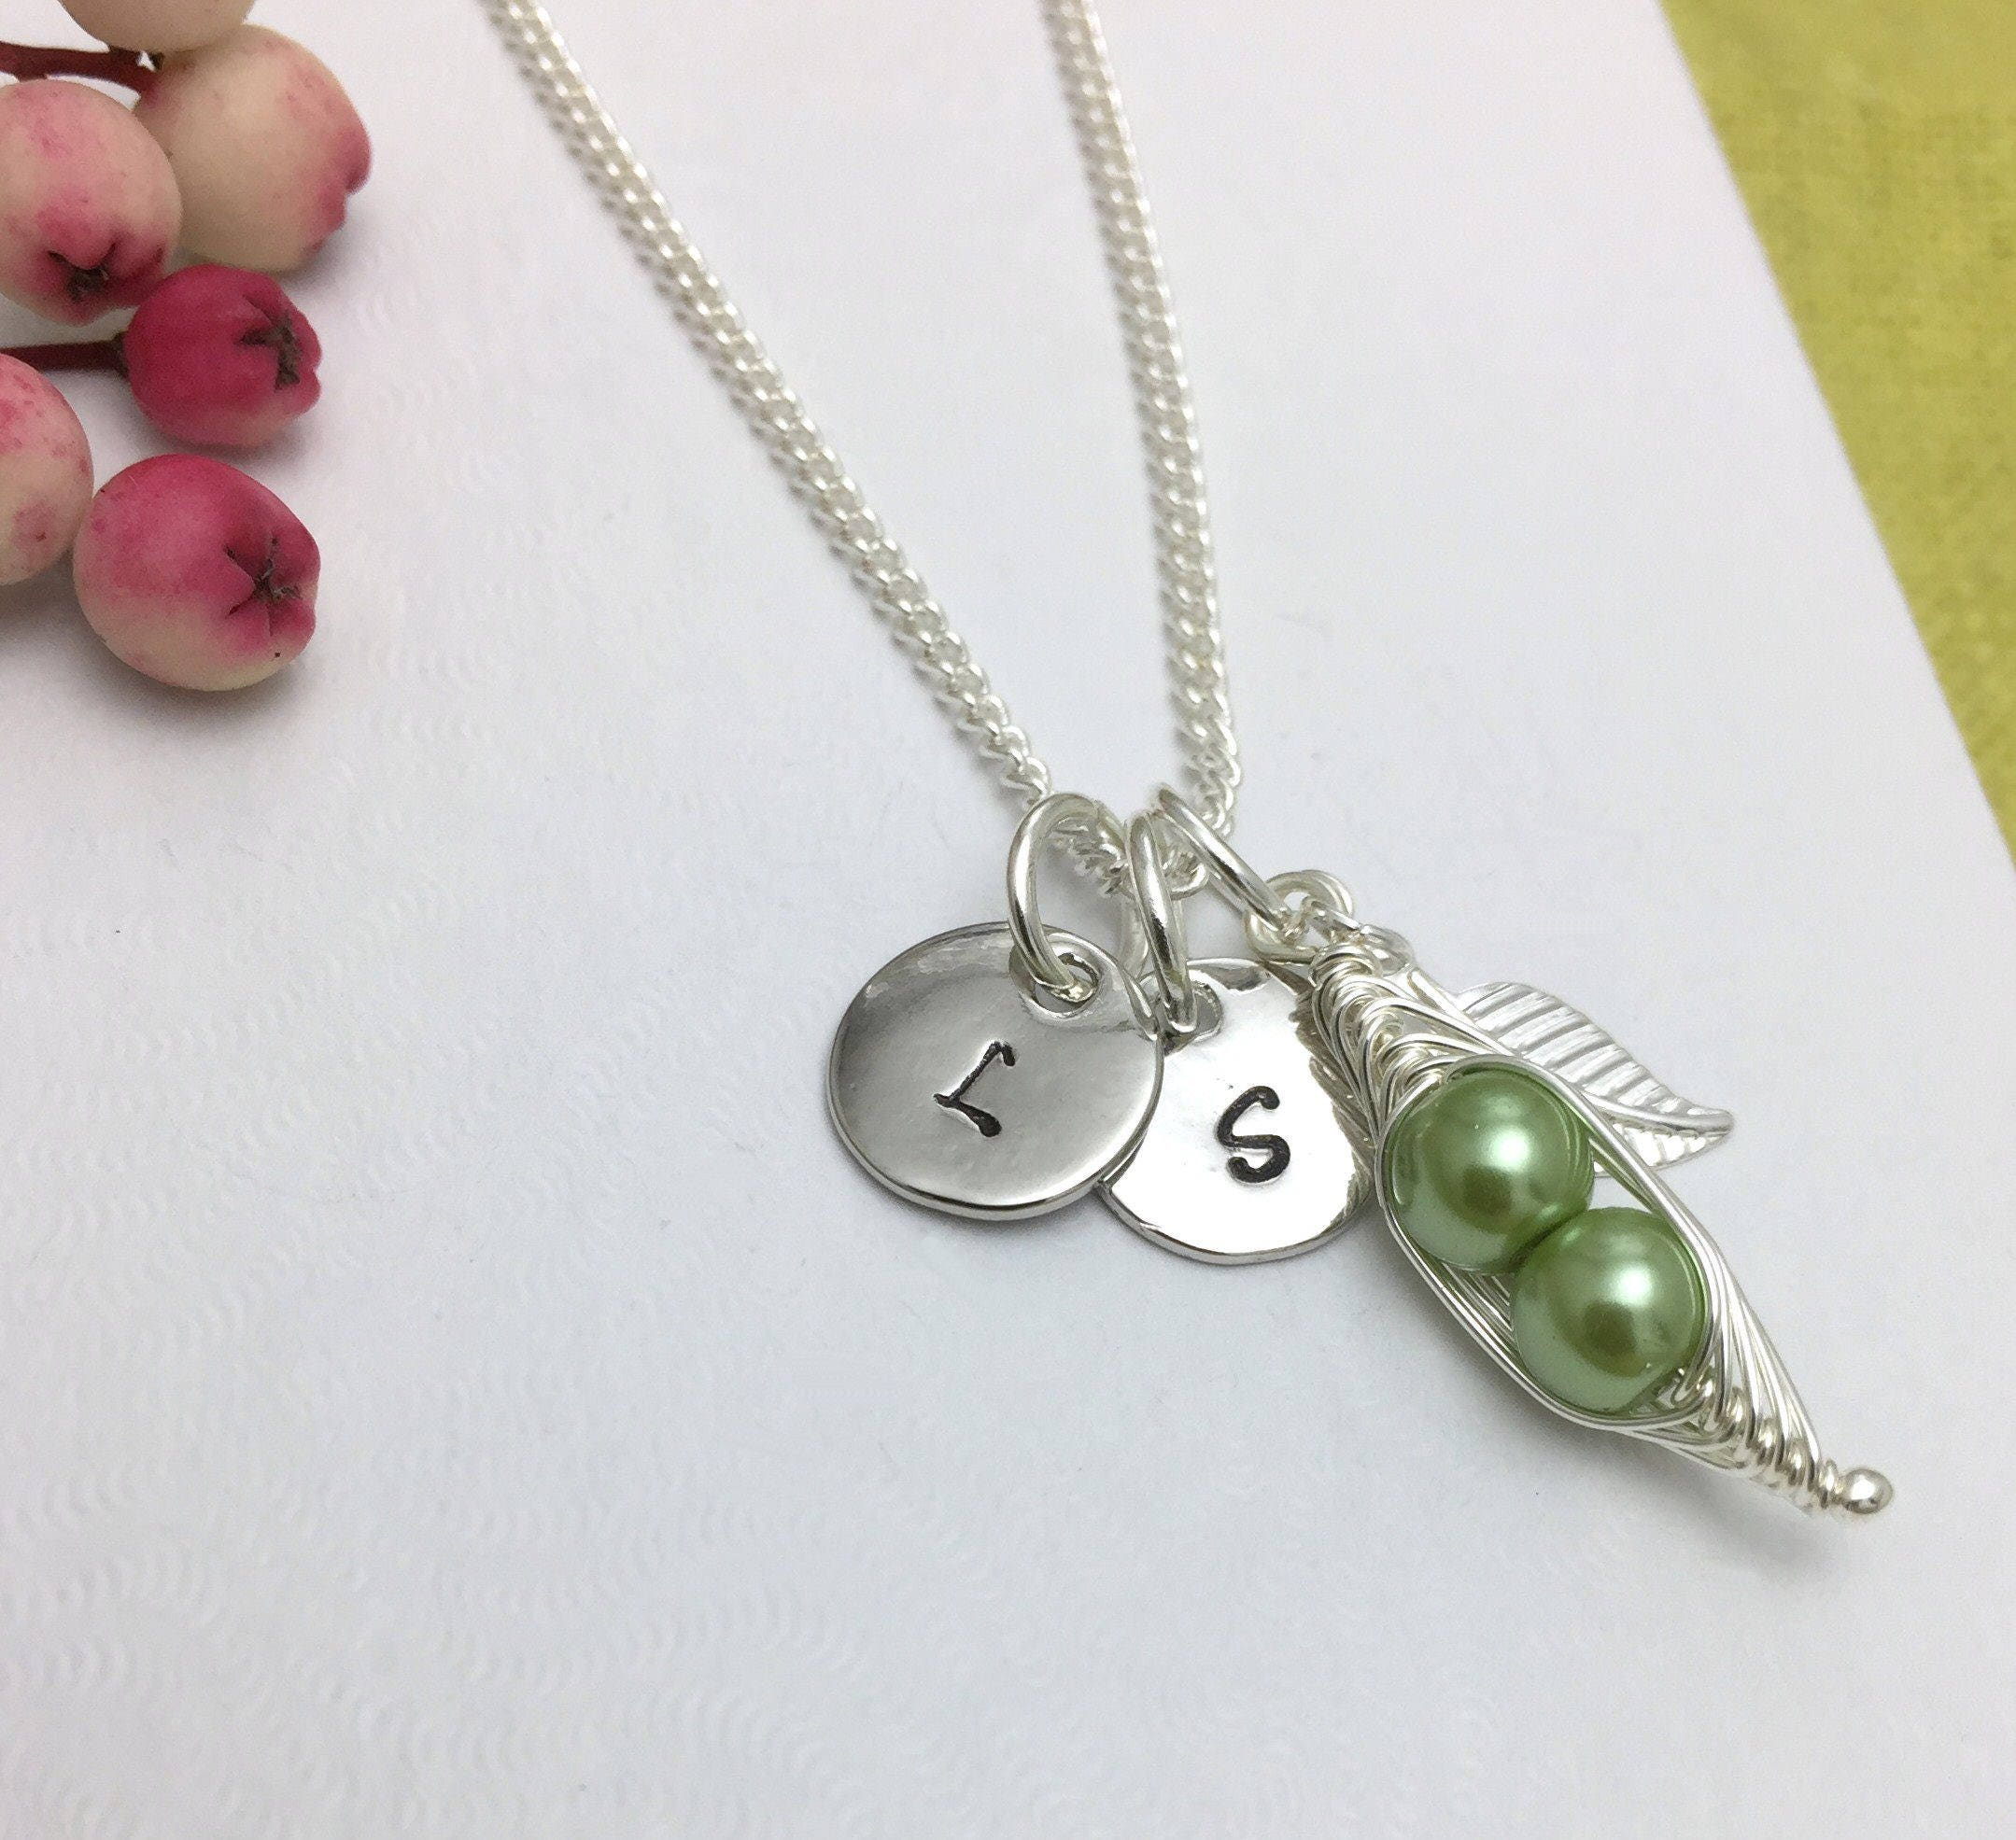 pod choose with byck products il water your green accessories necklace lucky count fresh jewelry pearls fullxfull peas a in pea